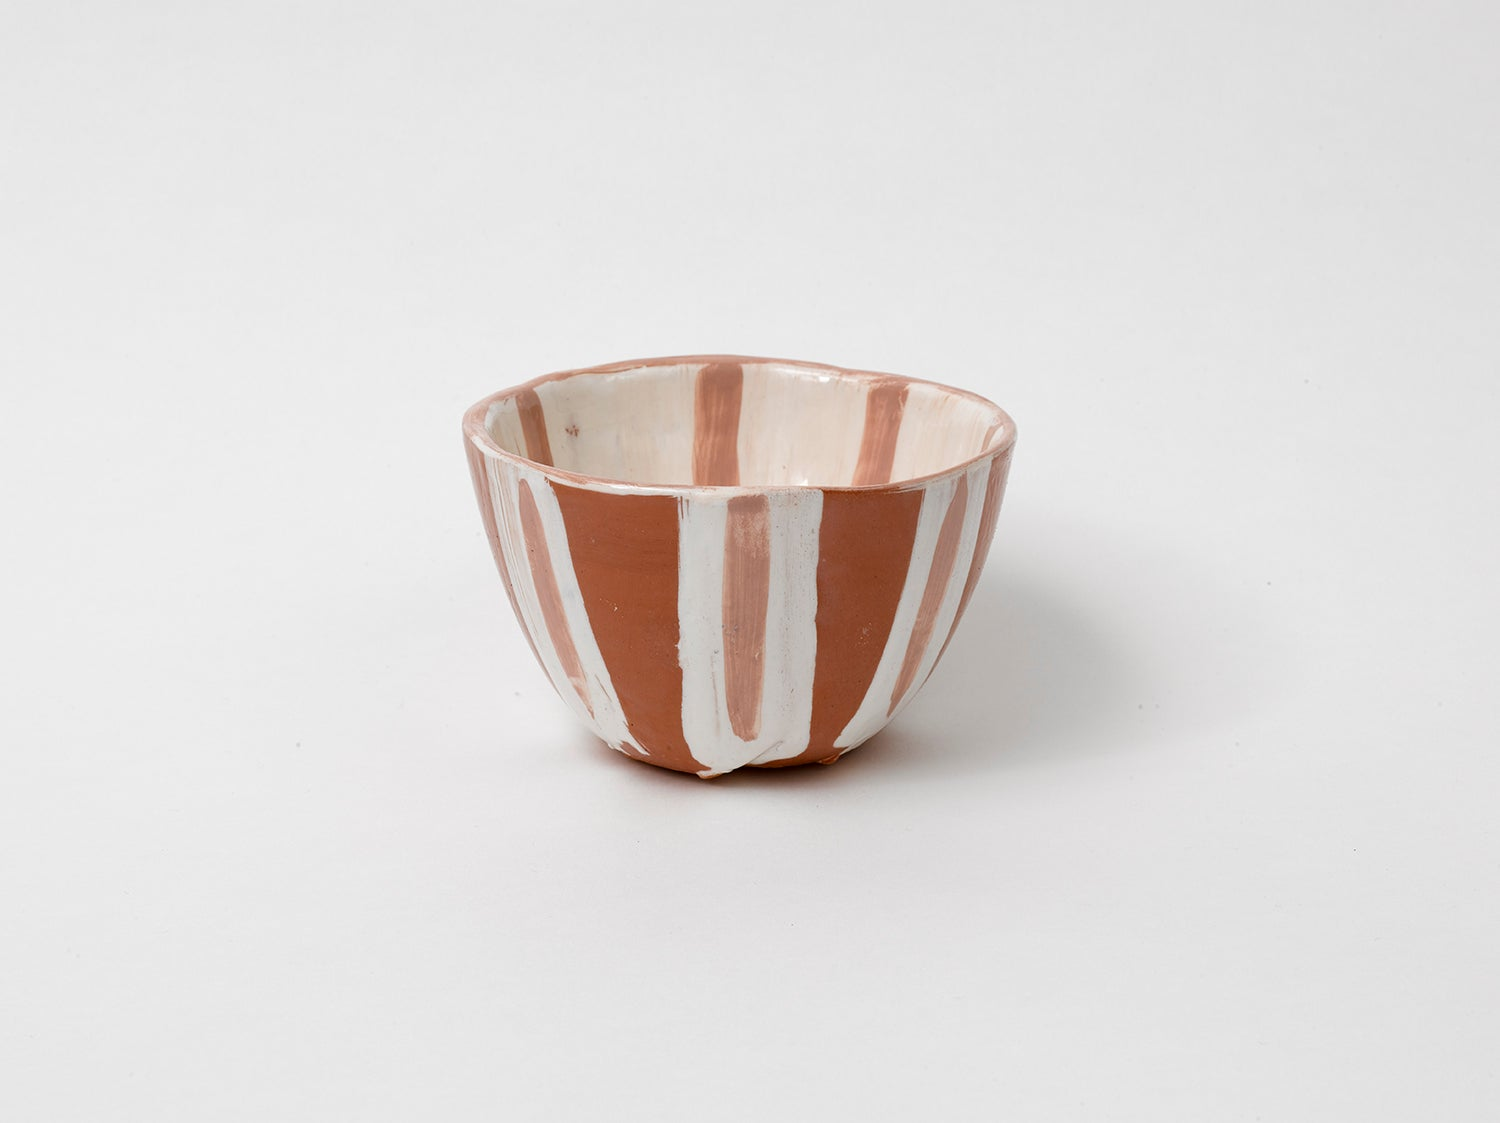 Image of Lucy Joyce Small Bowls